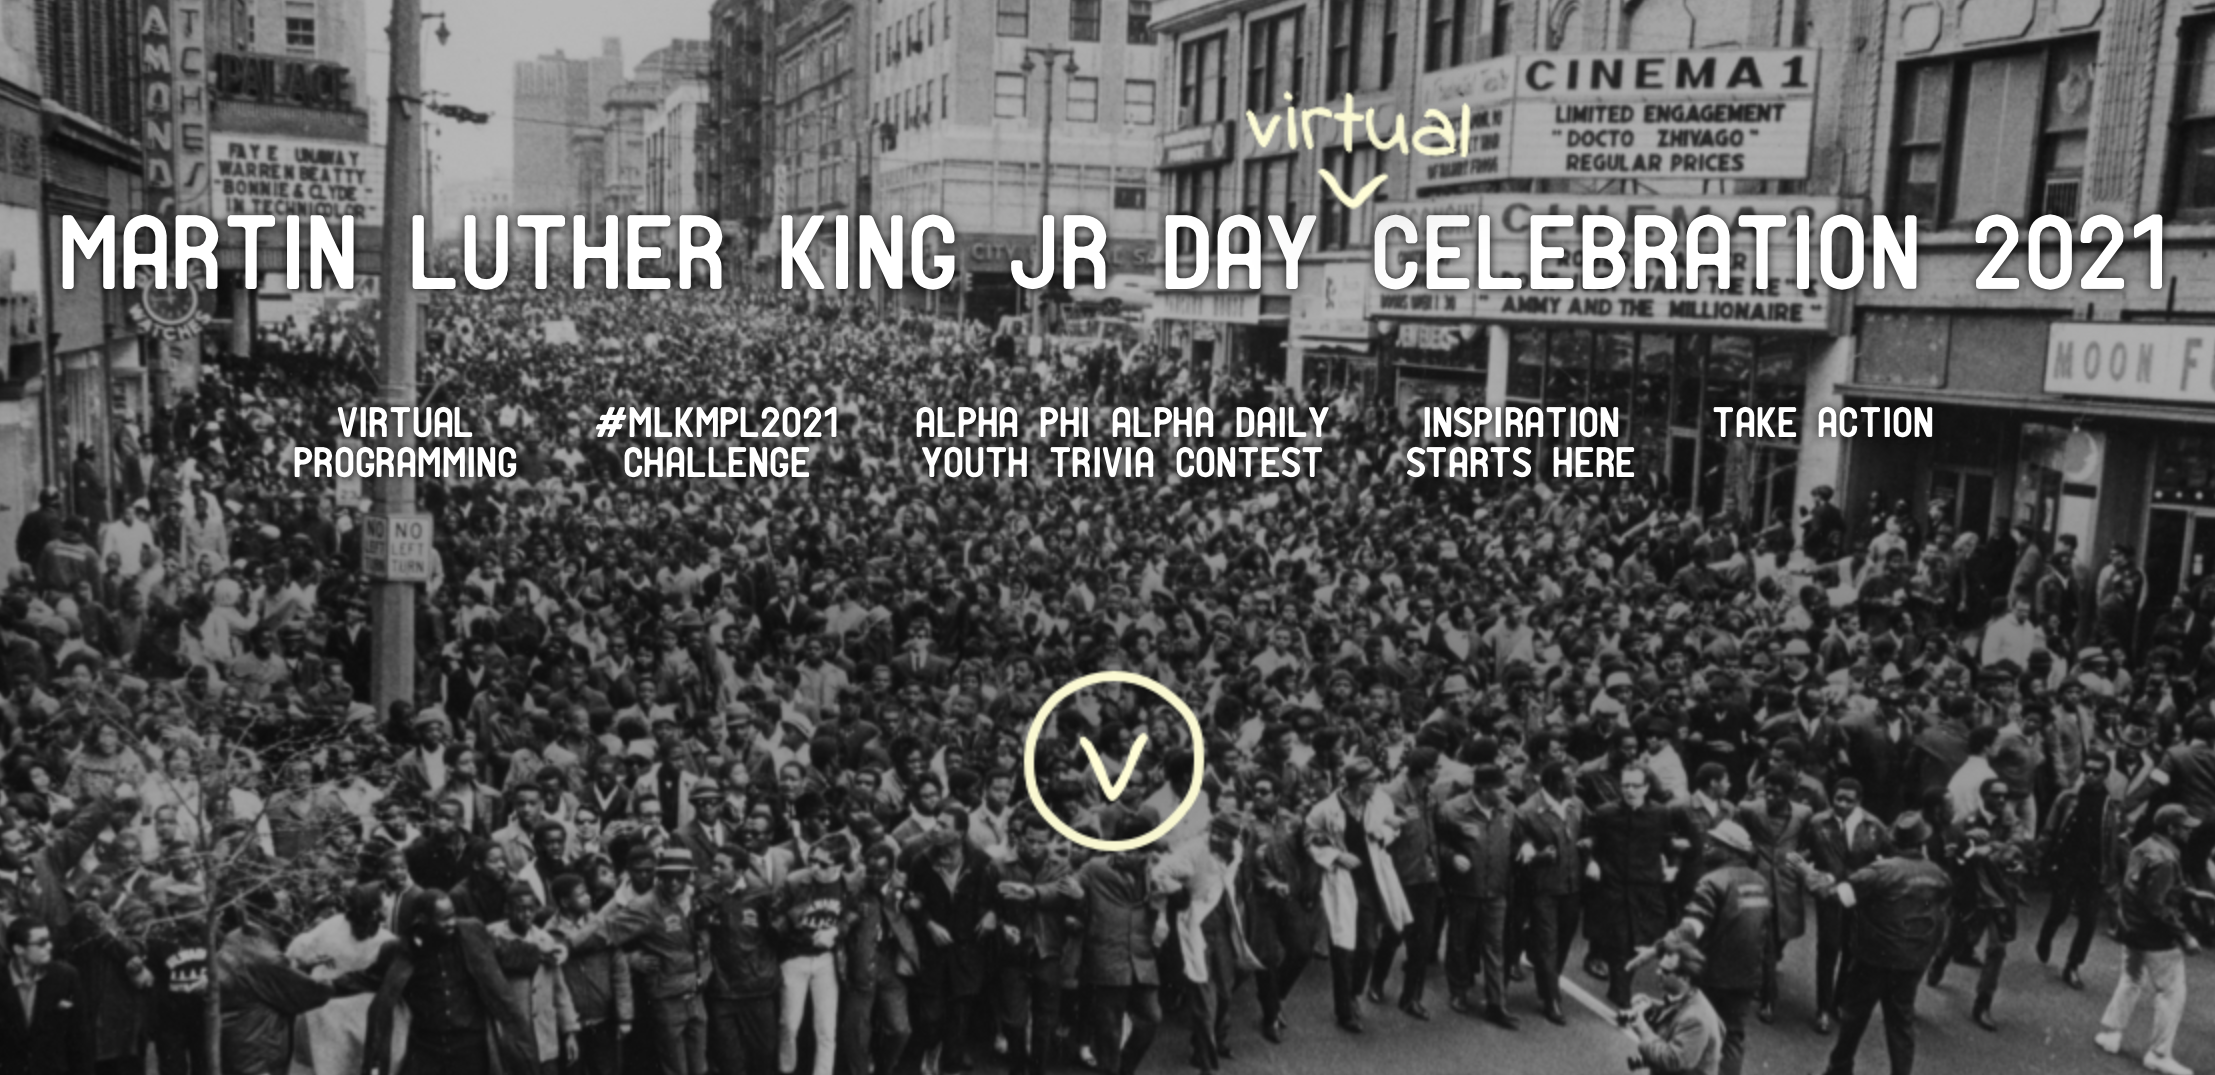 MPL continues strong tradition of celebrating Dr. Martin Luther King, Jr. day with online events this year